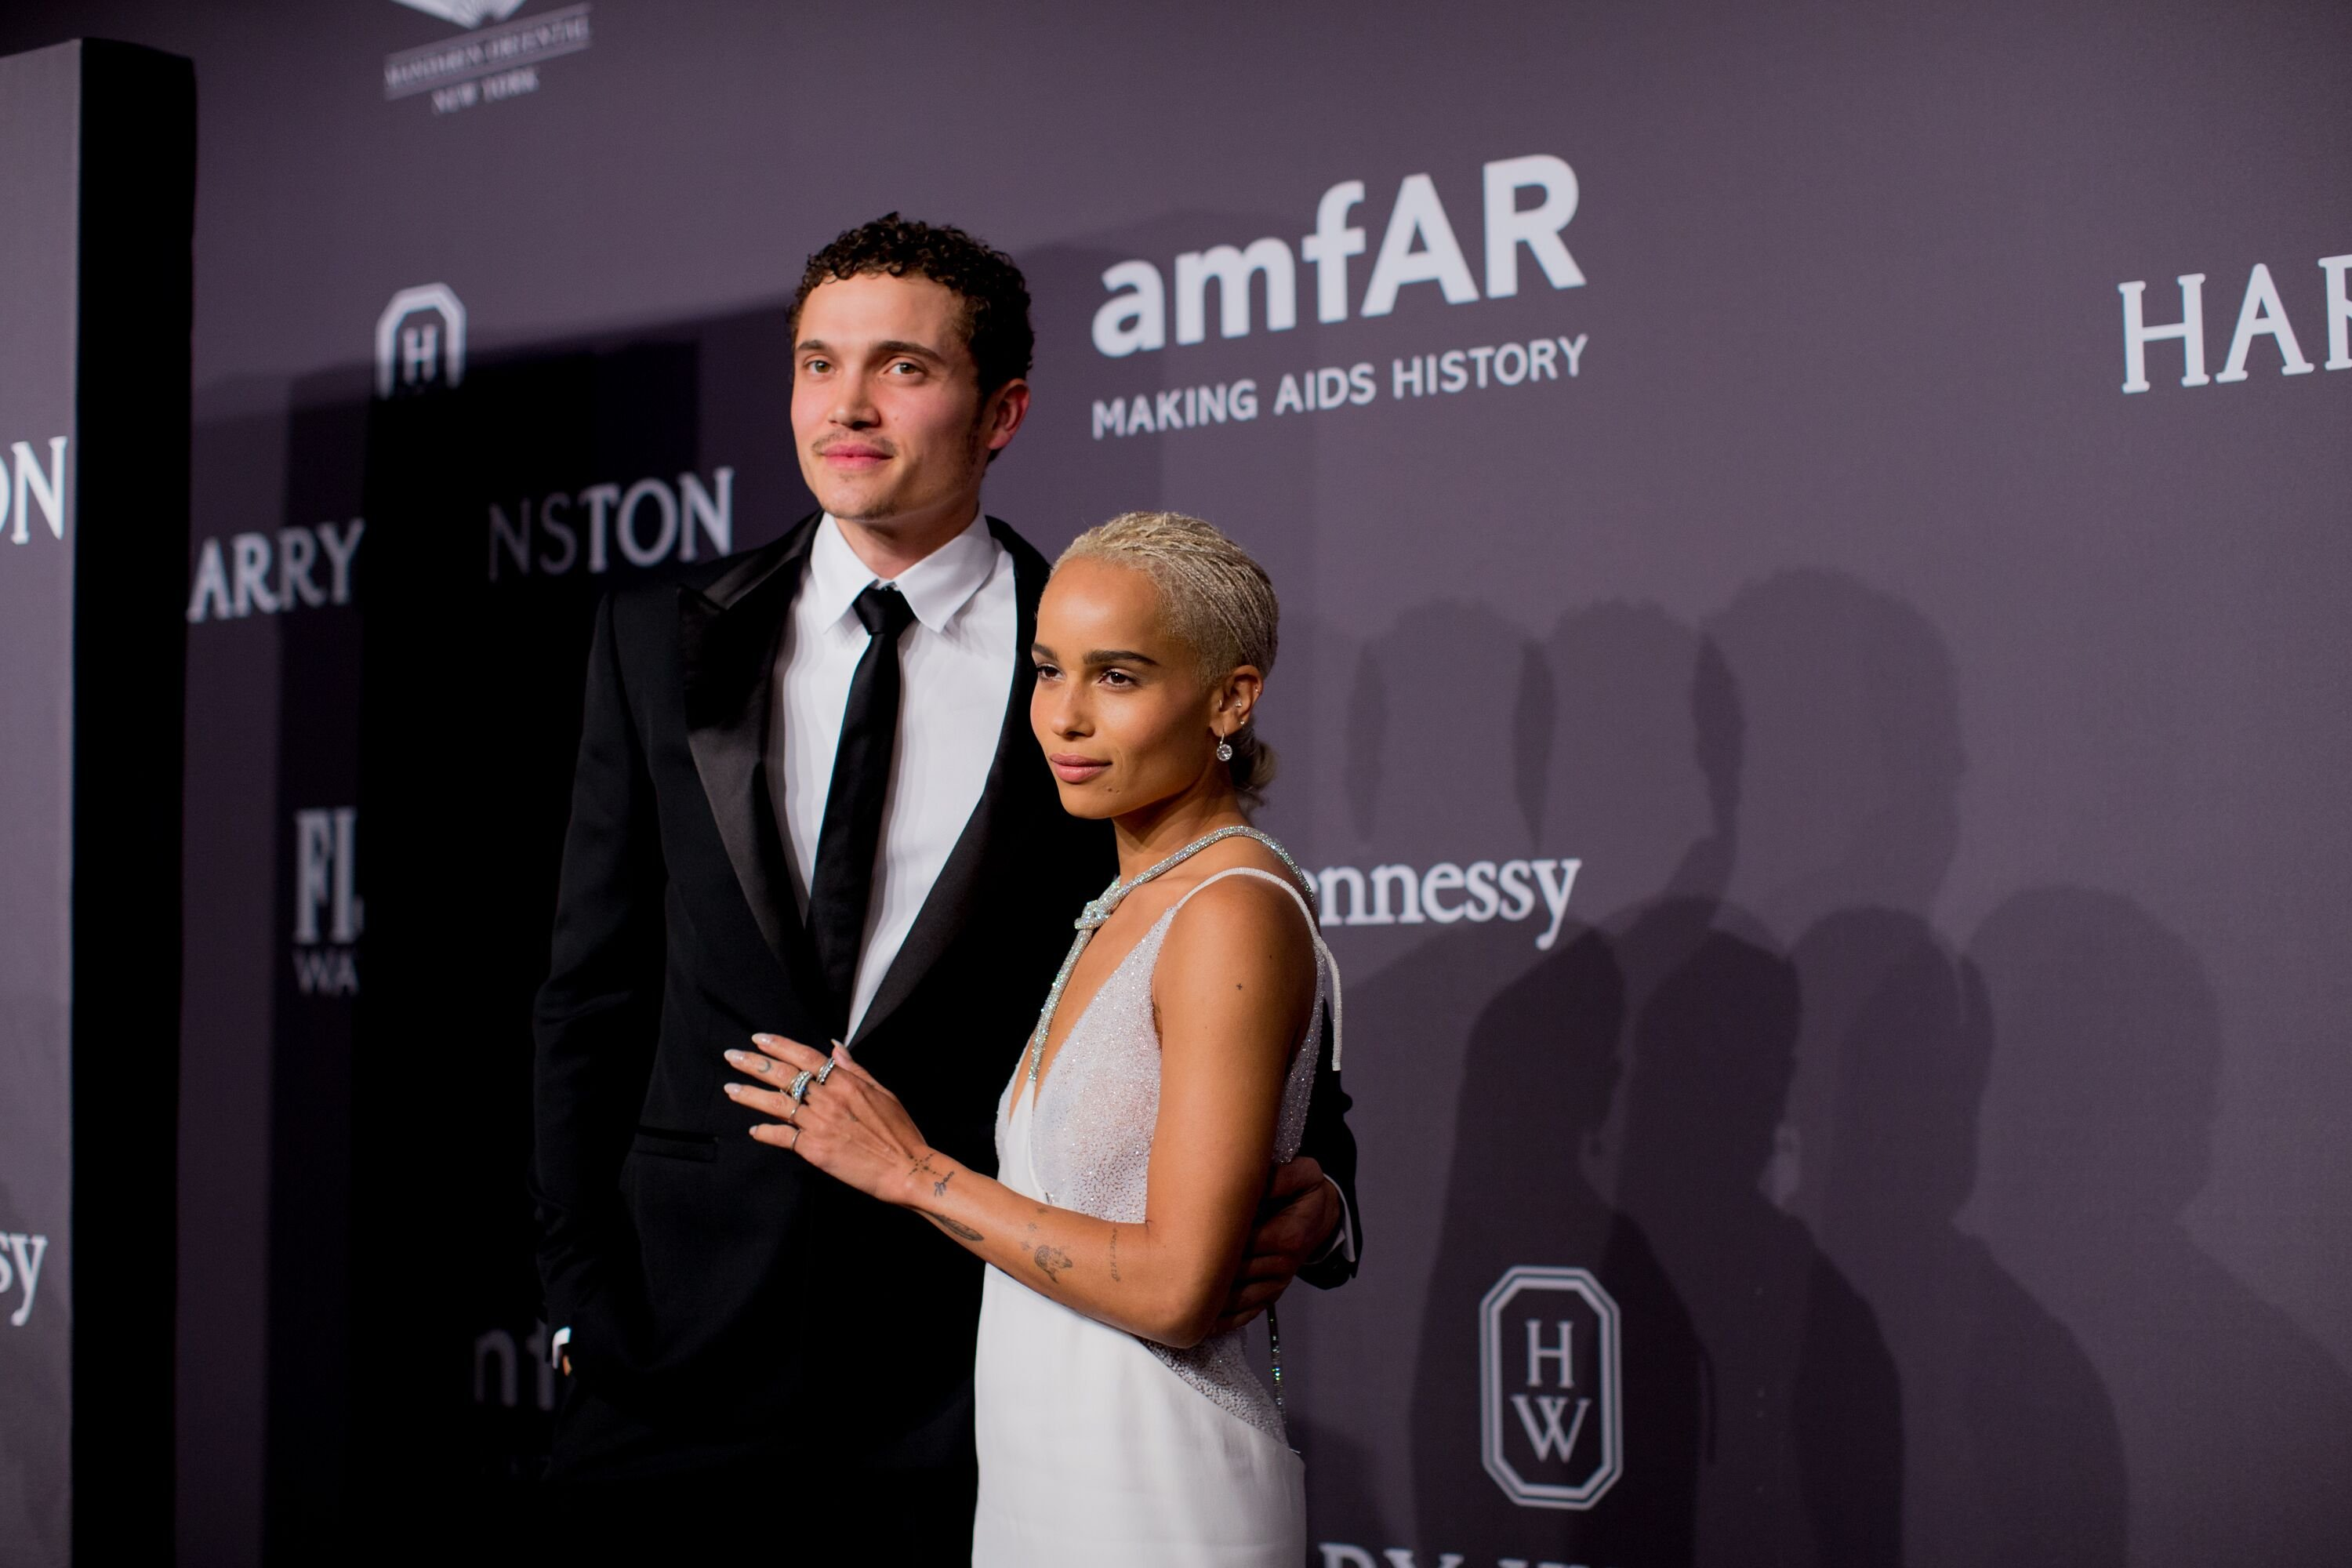 Karl Glusman and Zoe Kravitz arrive at the 19th Annual amfAR New York Gala at Cipriani Wall Street on February 8, 2017 | Photo: Getty Images